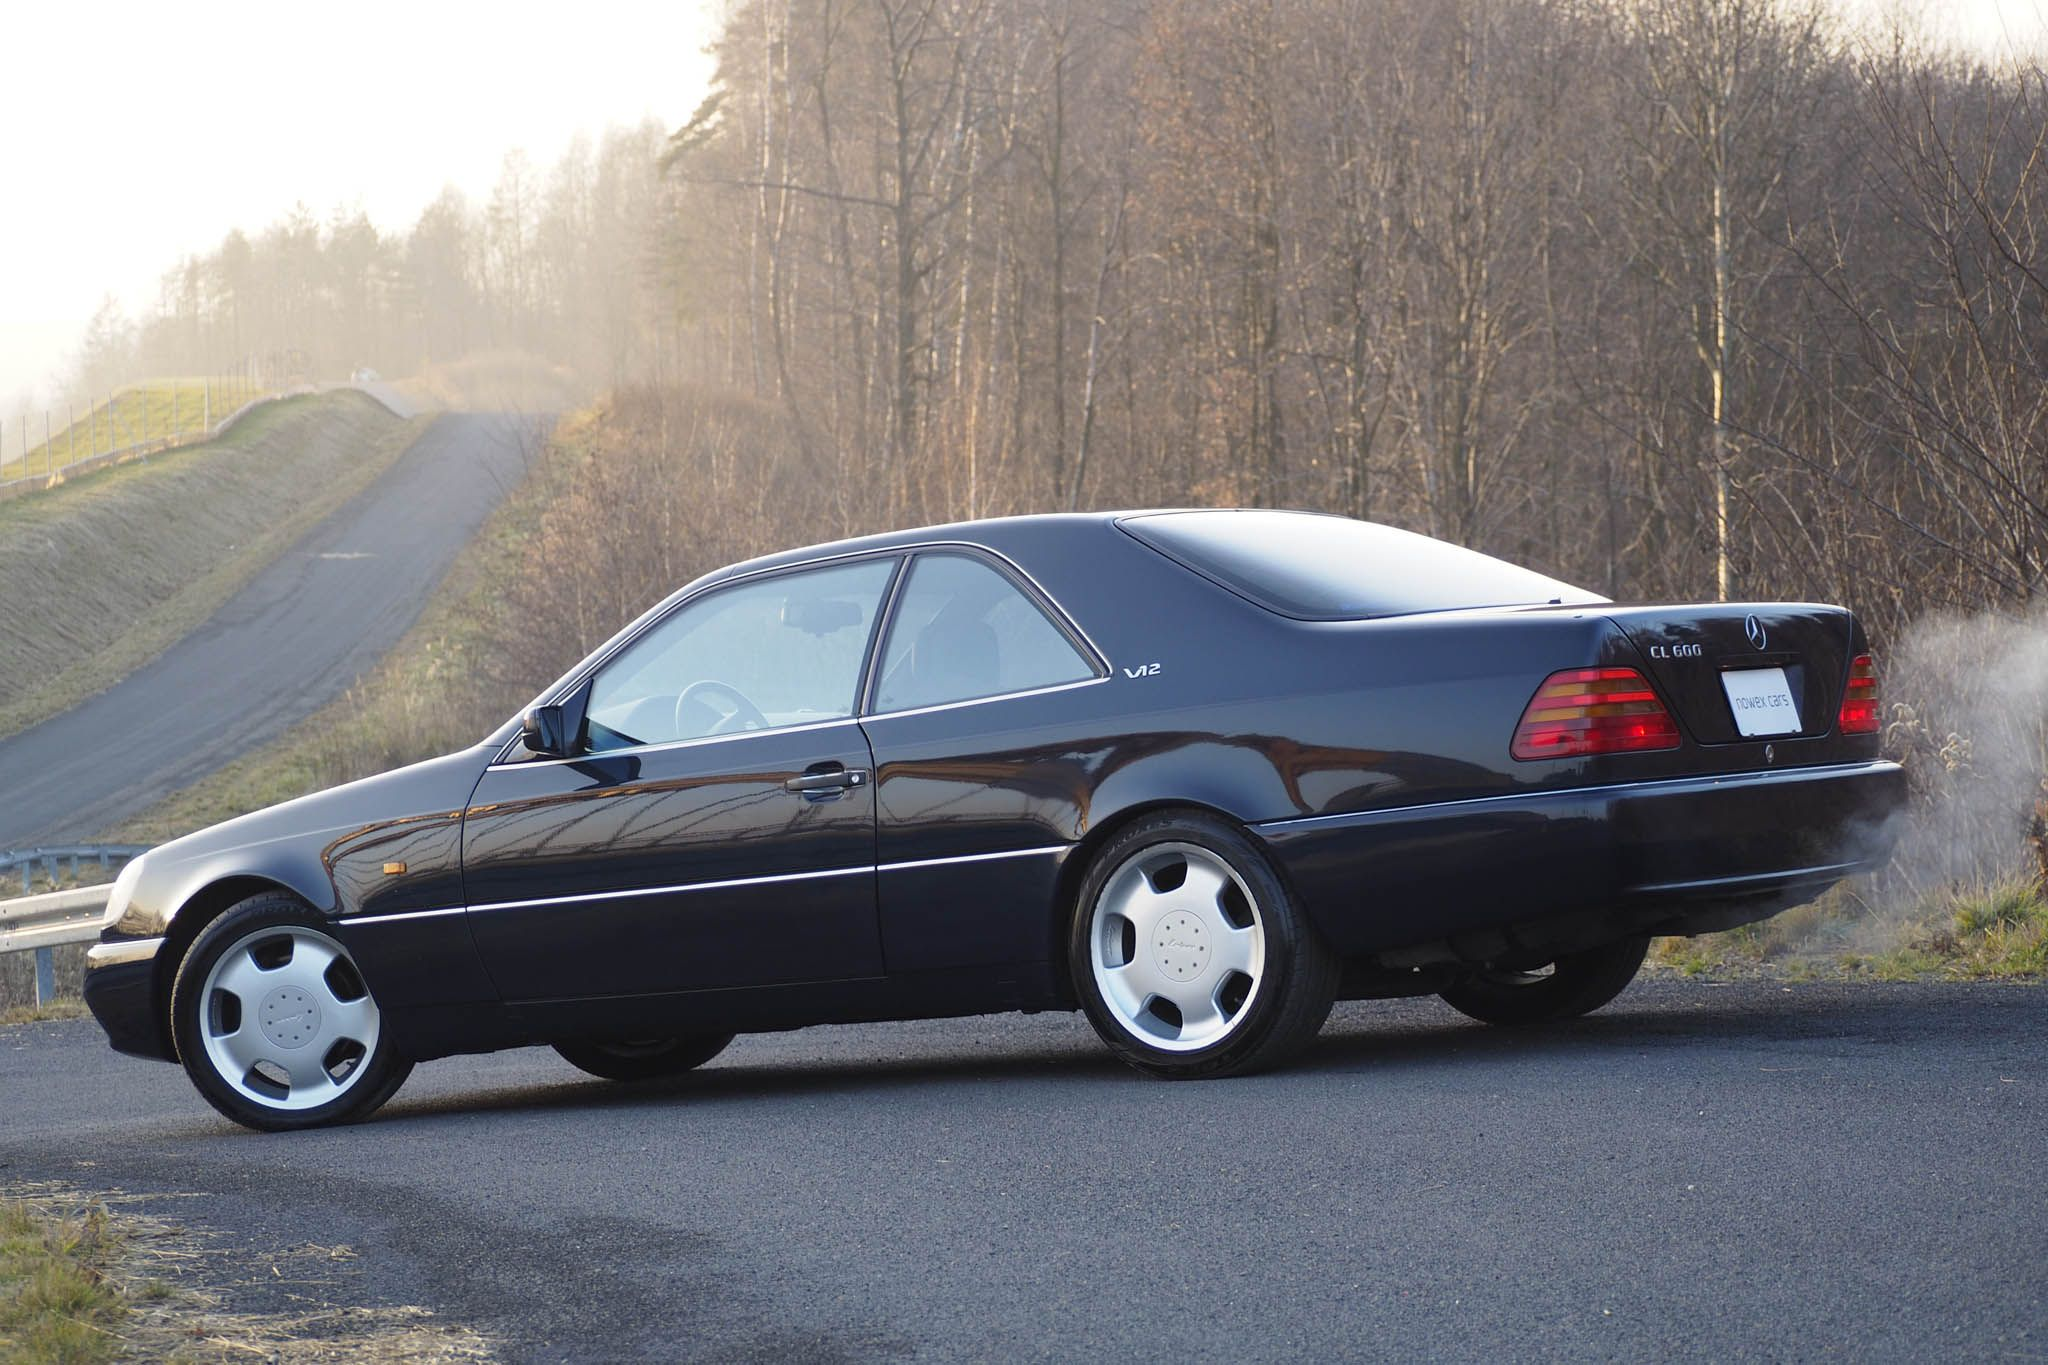 mercedes-benz cl600 c140 - recherche google | best design